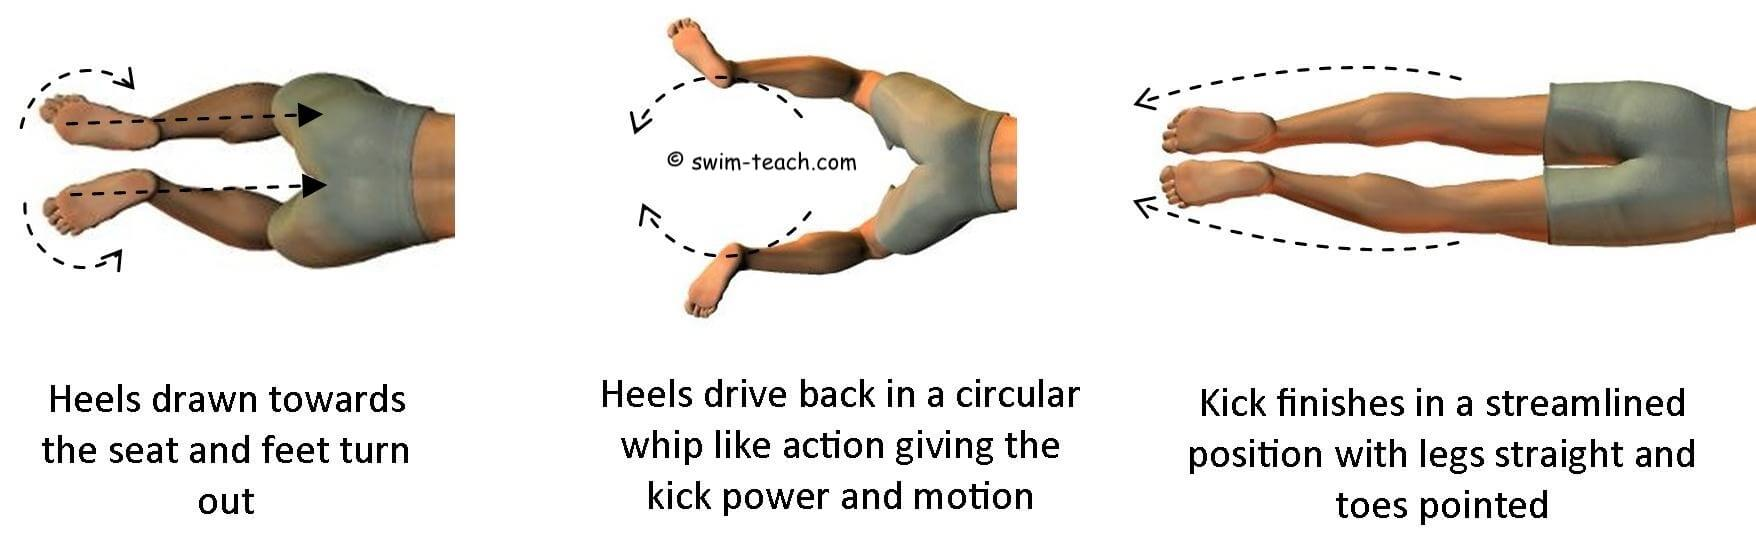 Overhead view of breaststroke leg kick technique.